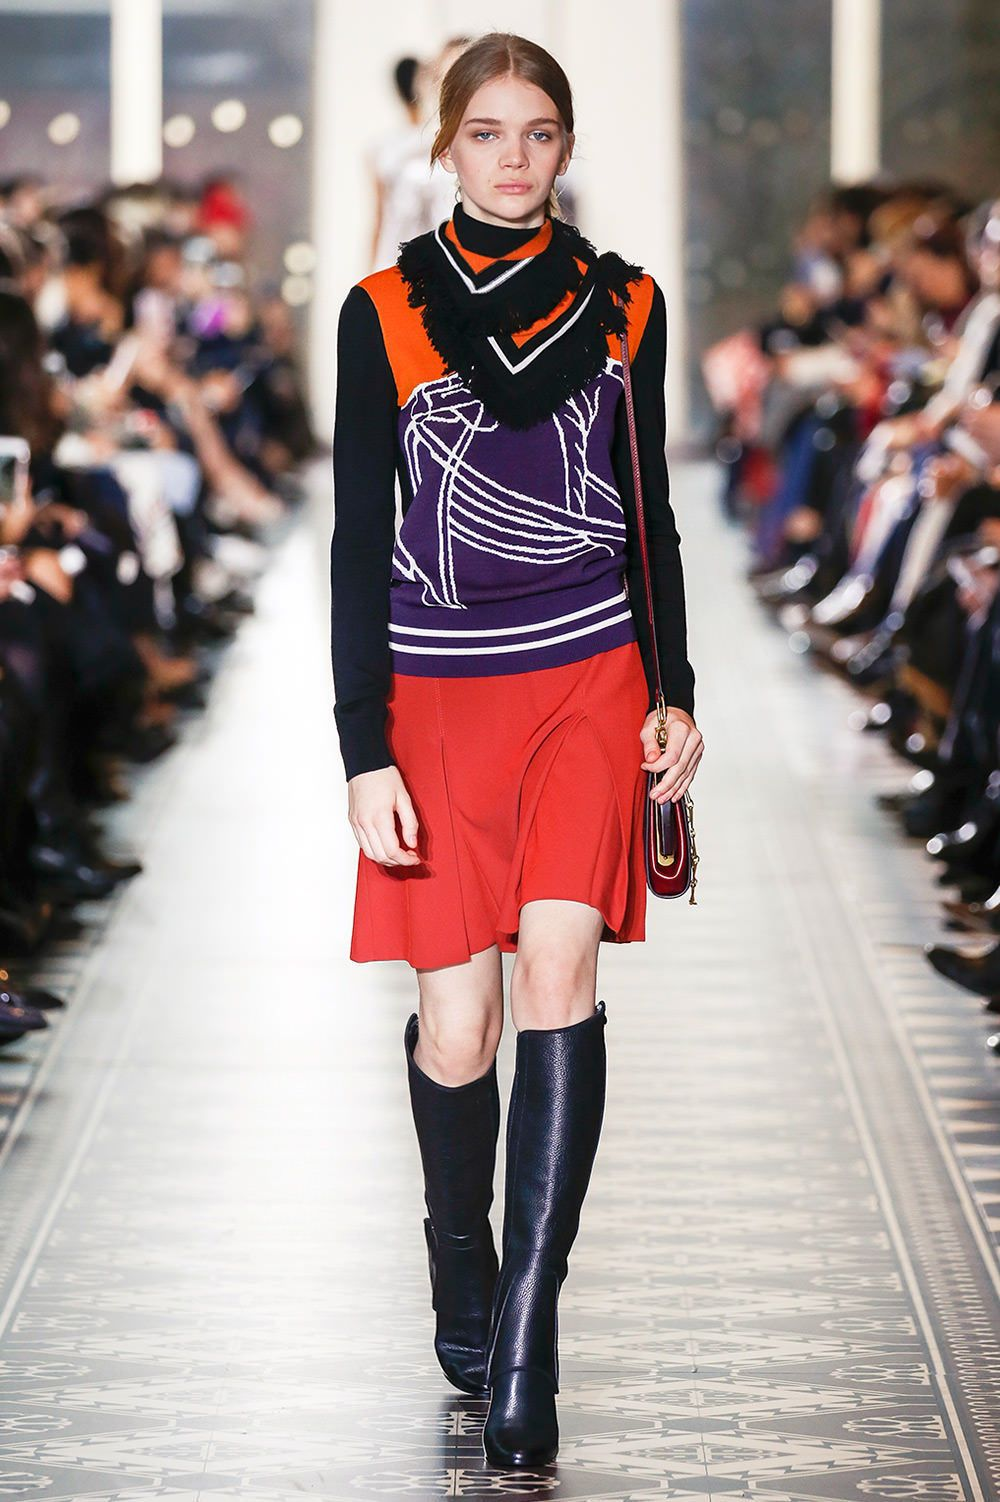 5ae543ad5a6 A runway look from the Tory Burch Fall Winter 2016 Fashion Show   ToryBurchFW16  nyfw  ToryBurch